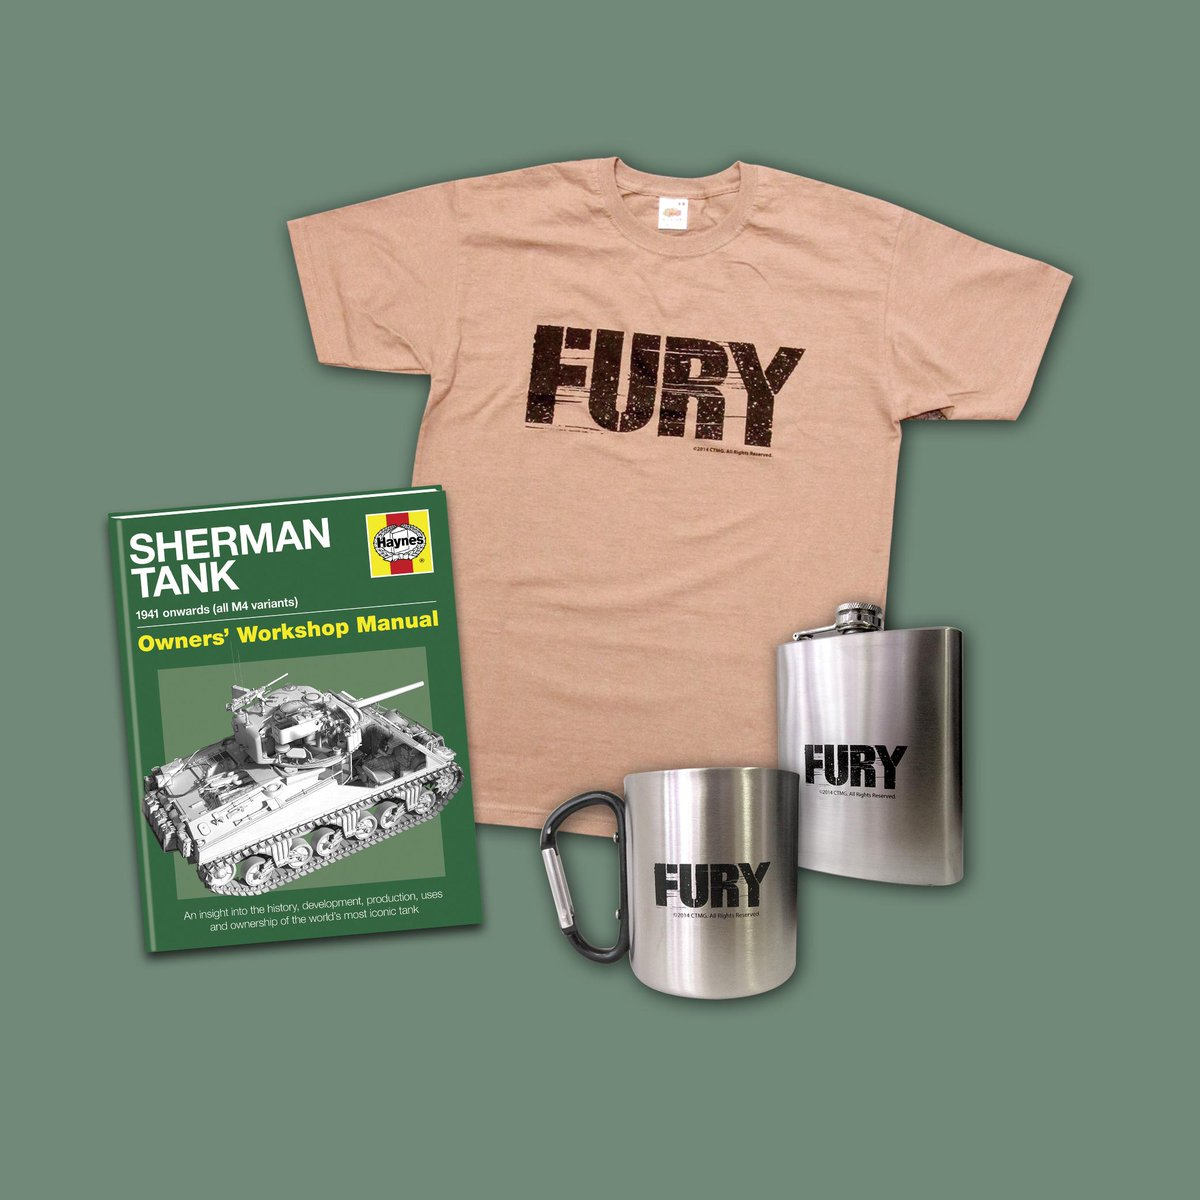 To celebrate the release of Fury we're giving away a goodie bag! Follow & RT by 23:59 23/2/15 to enter! #Fury #win http://t.co/rs9kjGzI5L